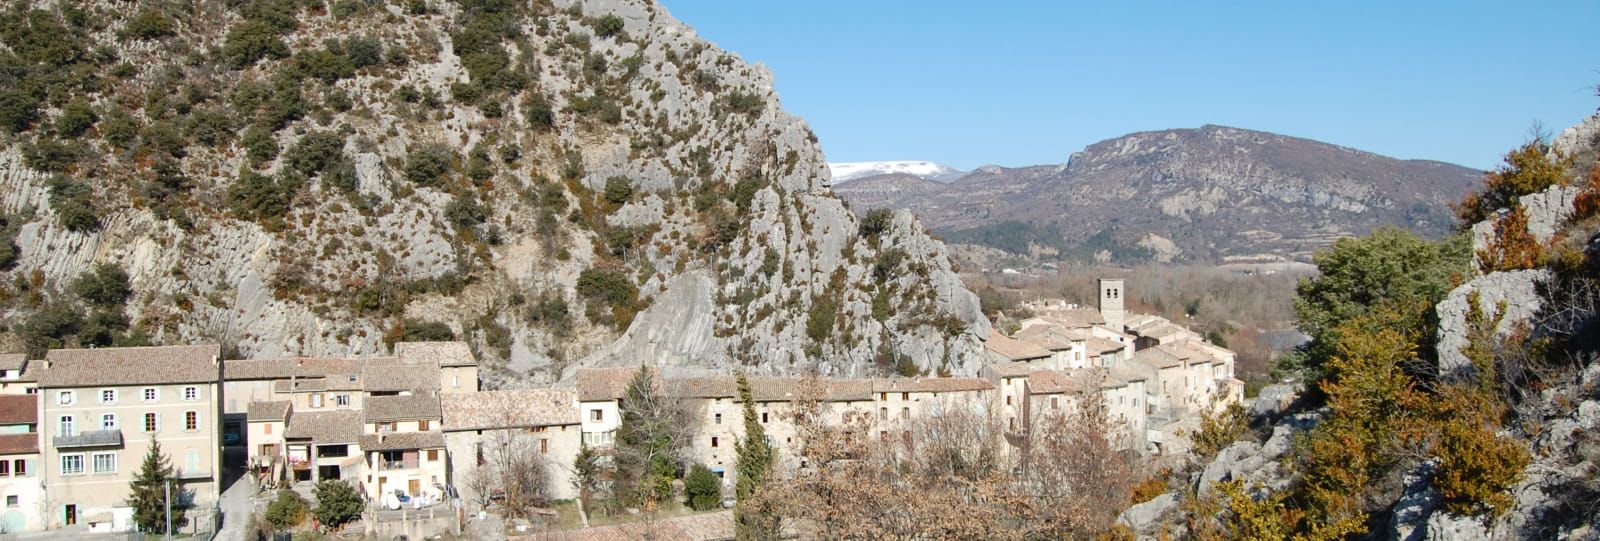 Village des Pilles